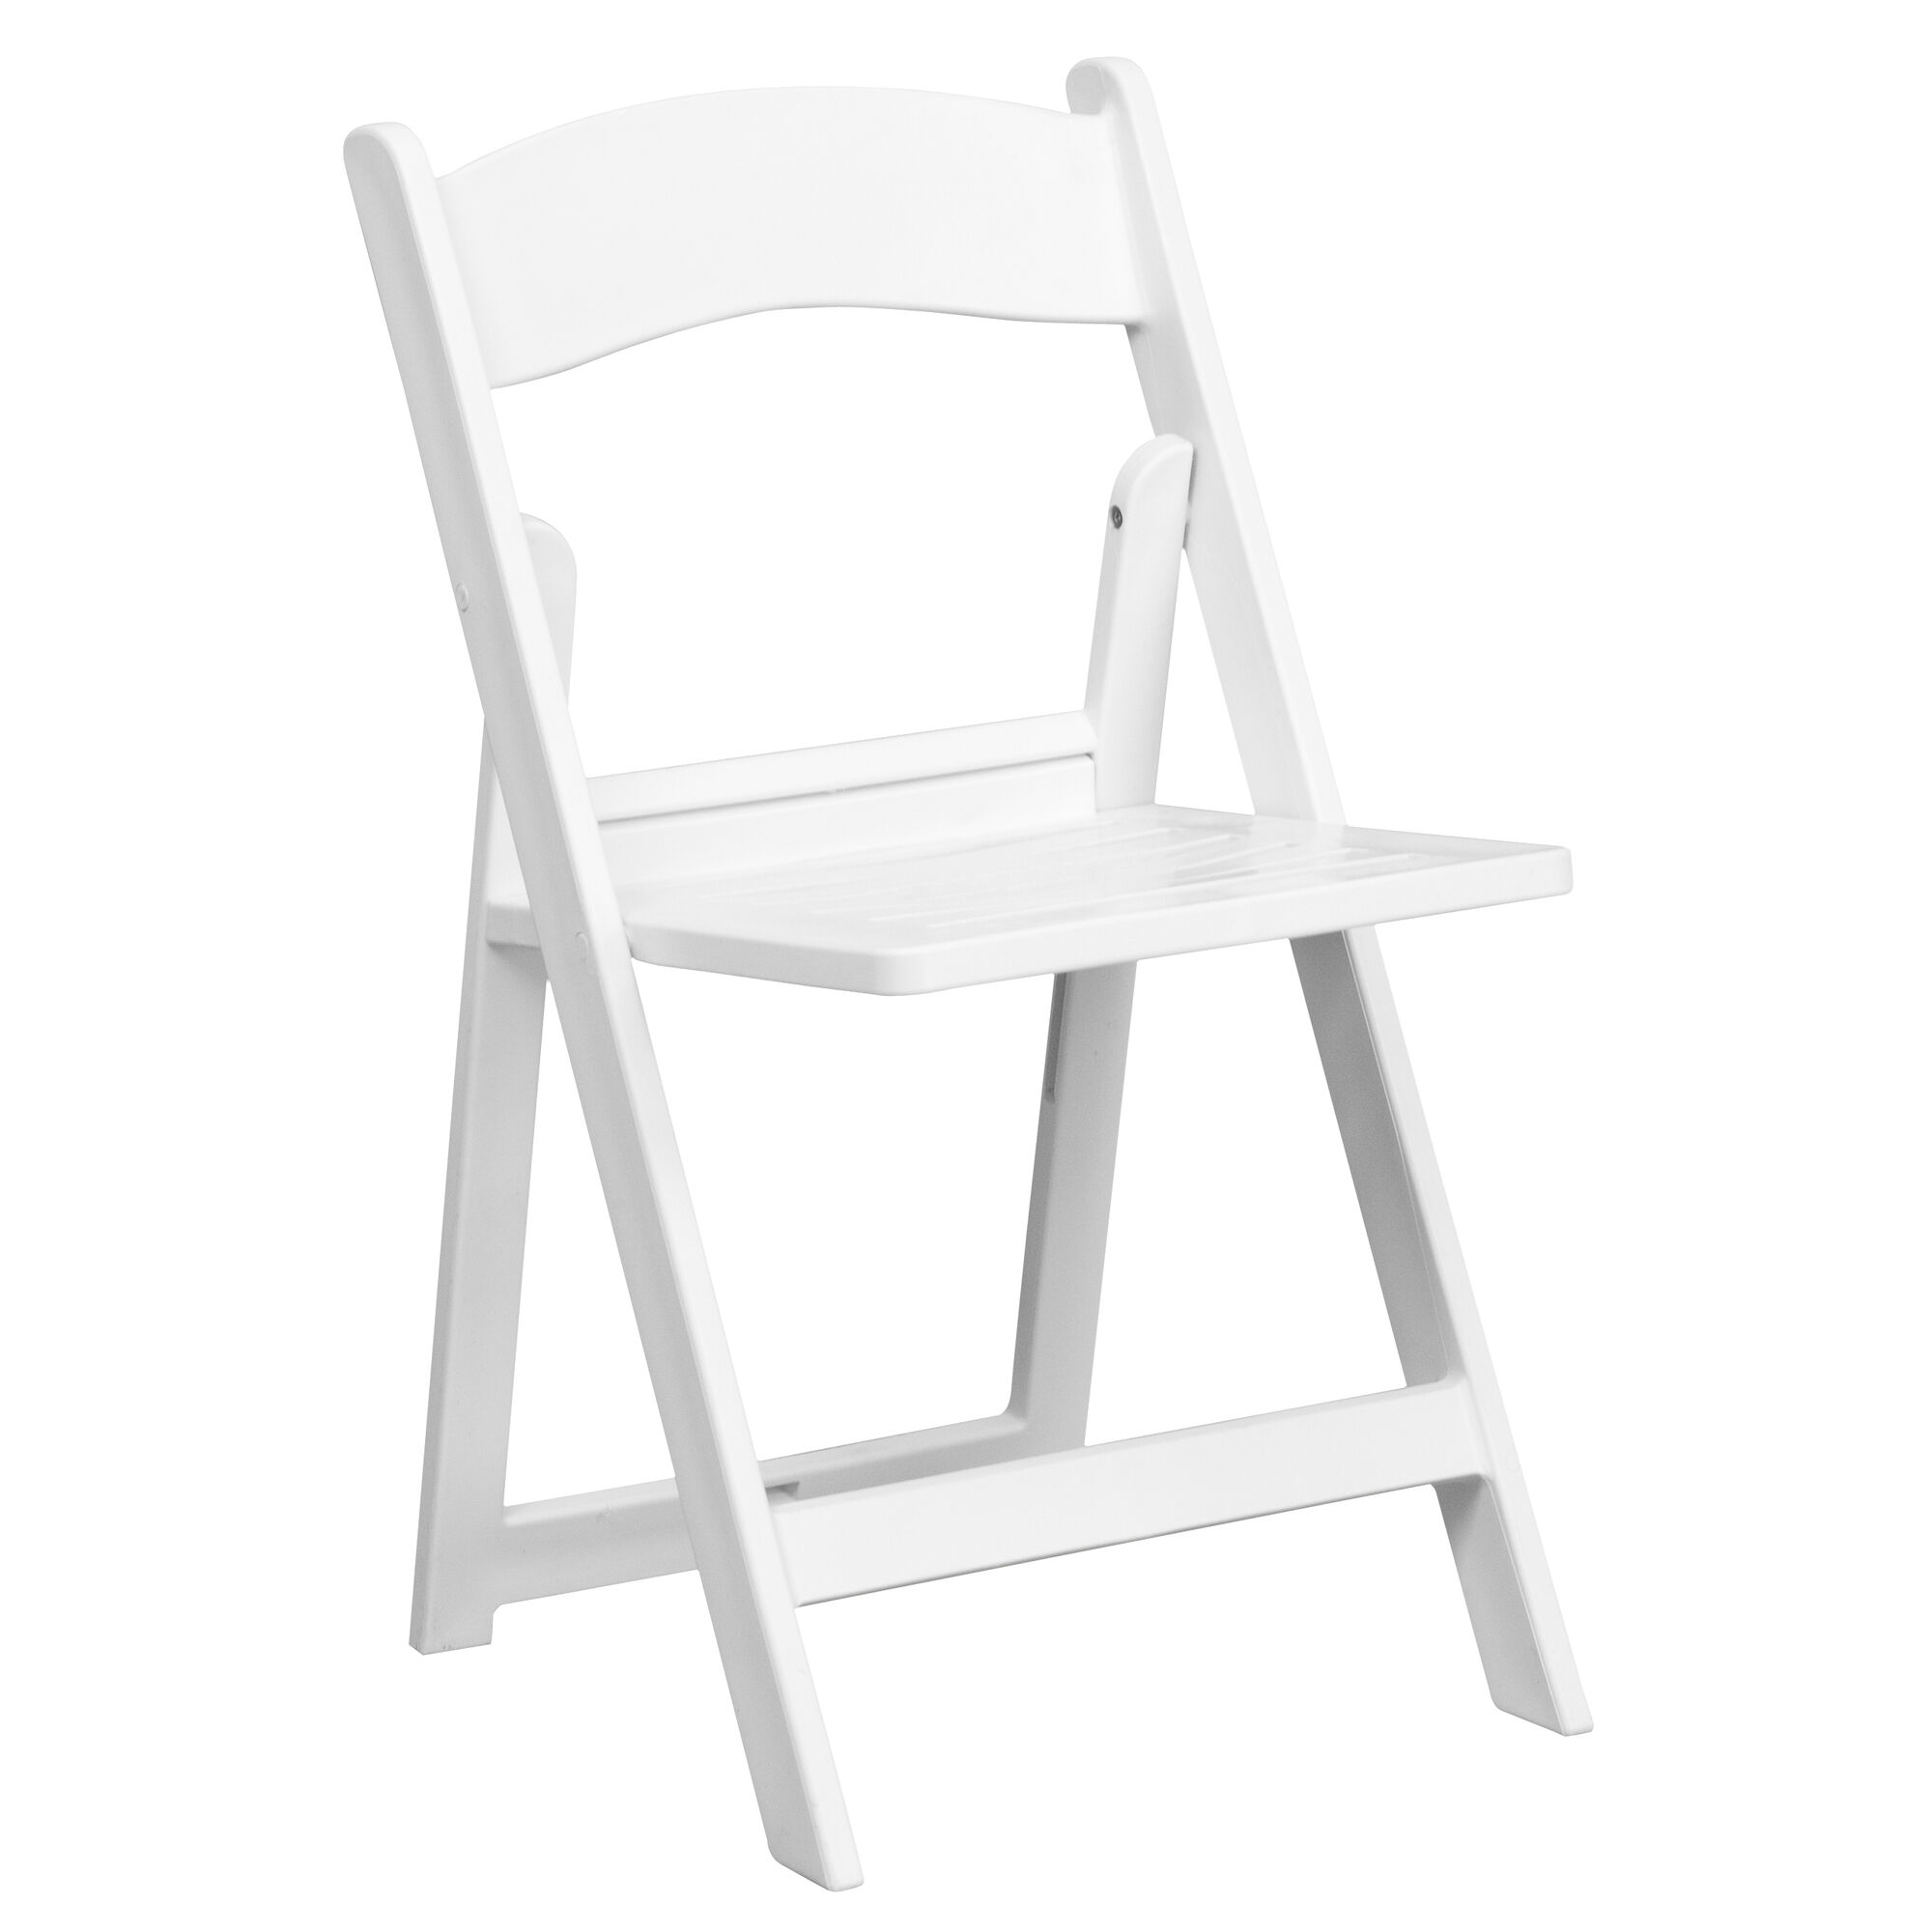 Marvelous Hercules Series 1000 Lb Capacity White Resin Folding Chair With Slatted Seat Creativecarmelina Interior Chair Design Creativecarmelinacom